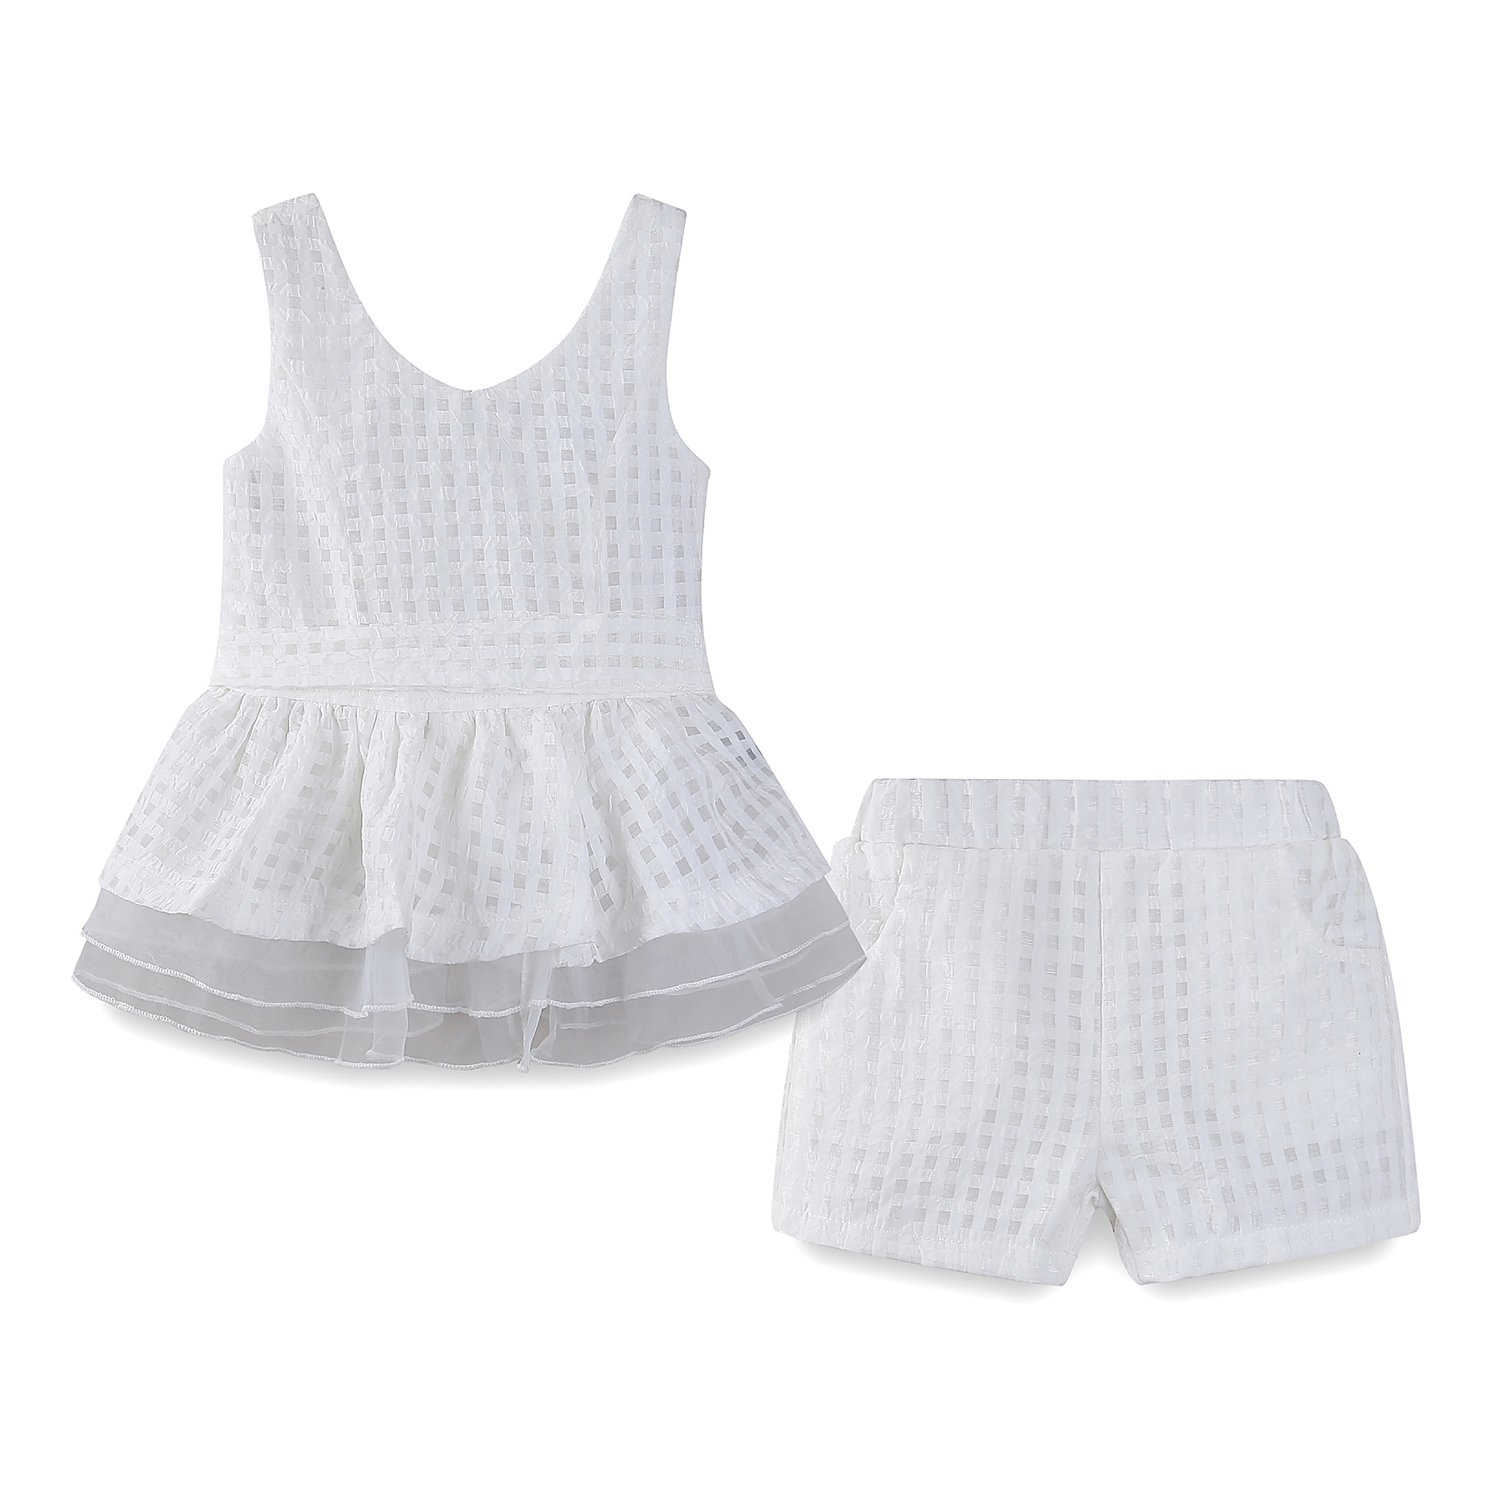 mud kingdom Little Girls Short Sets Summer Chiffon Tank Tops and Shorts Outfits Size 5 White